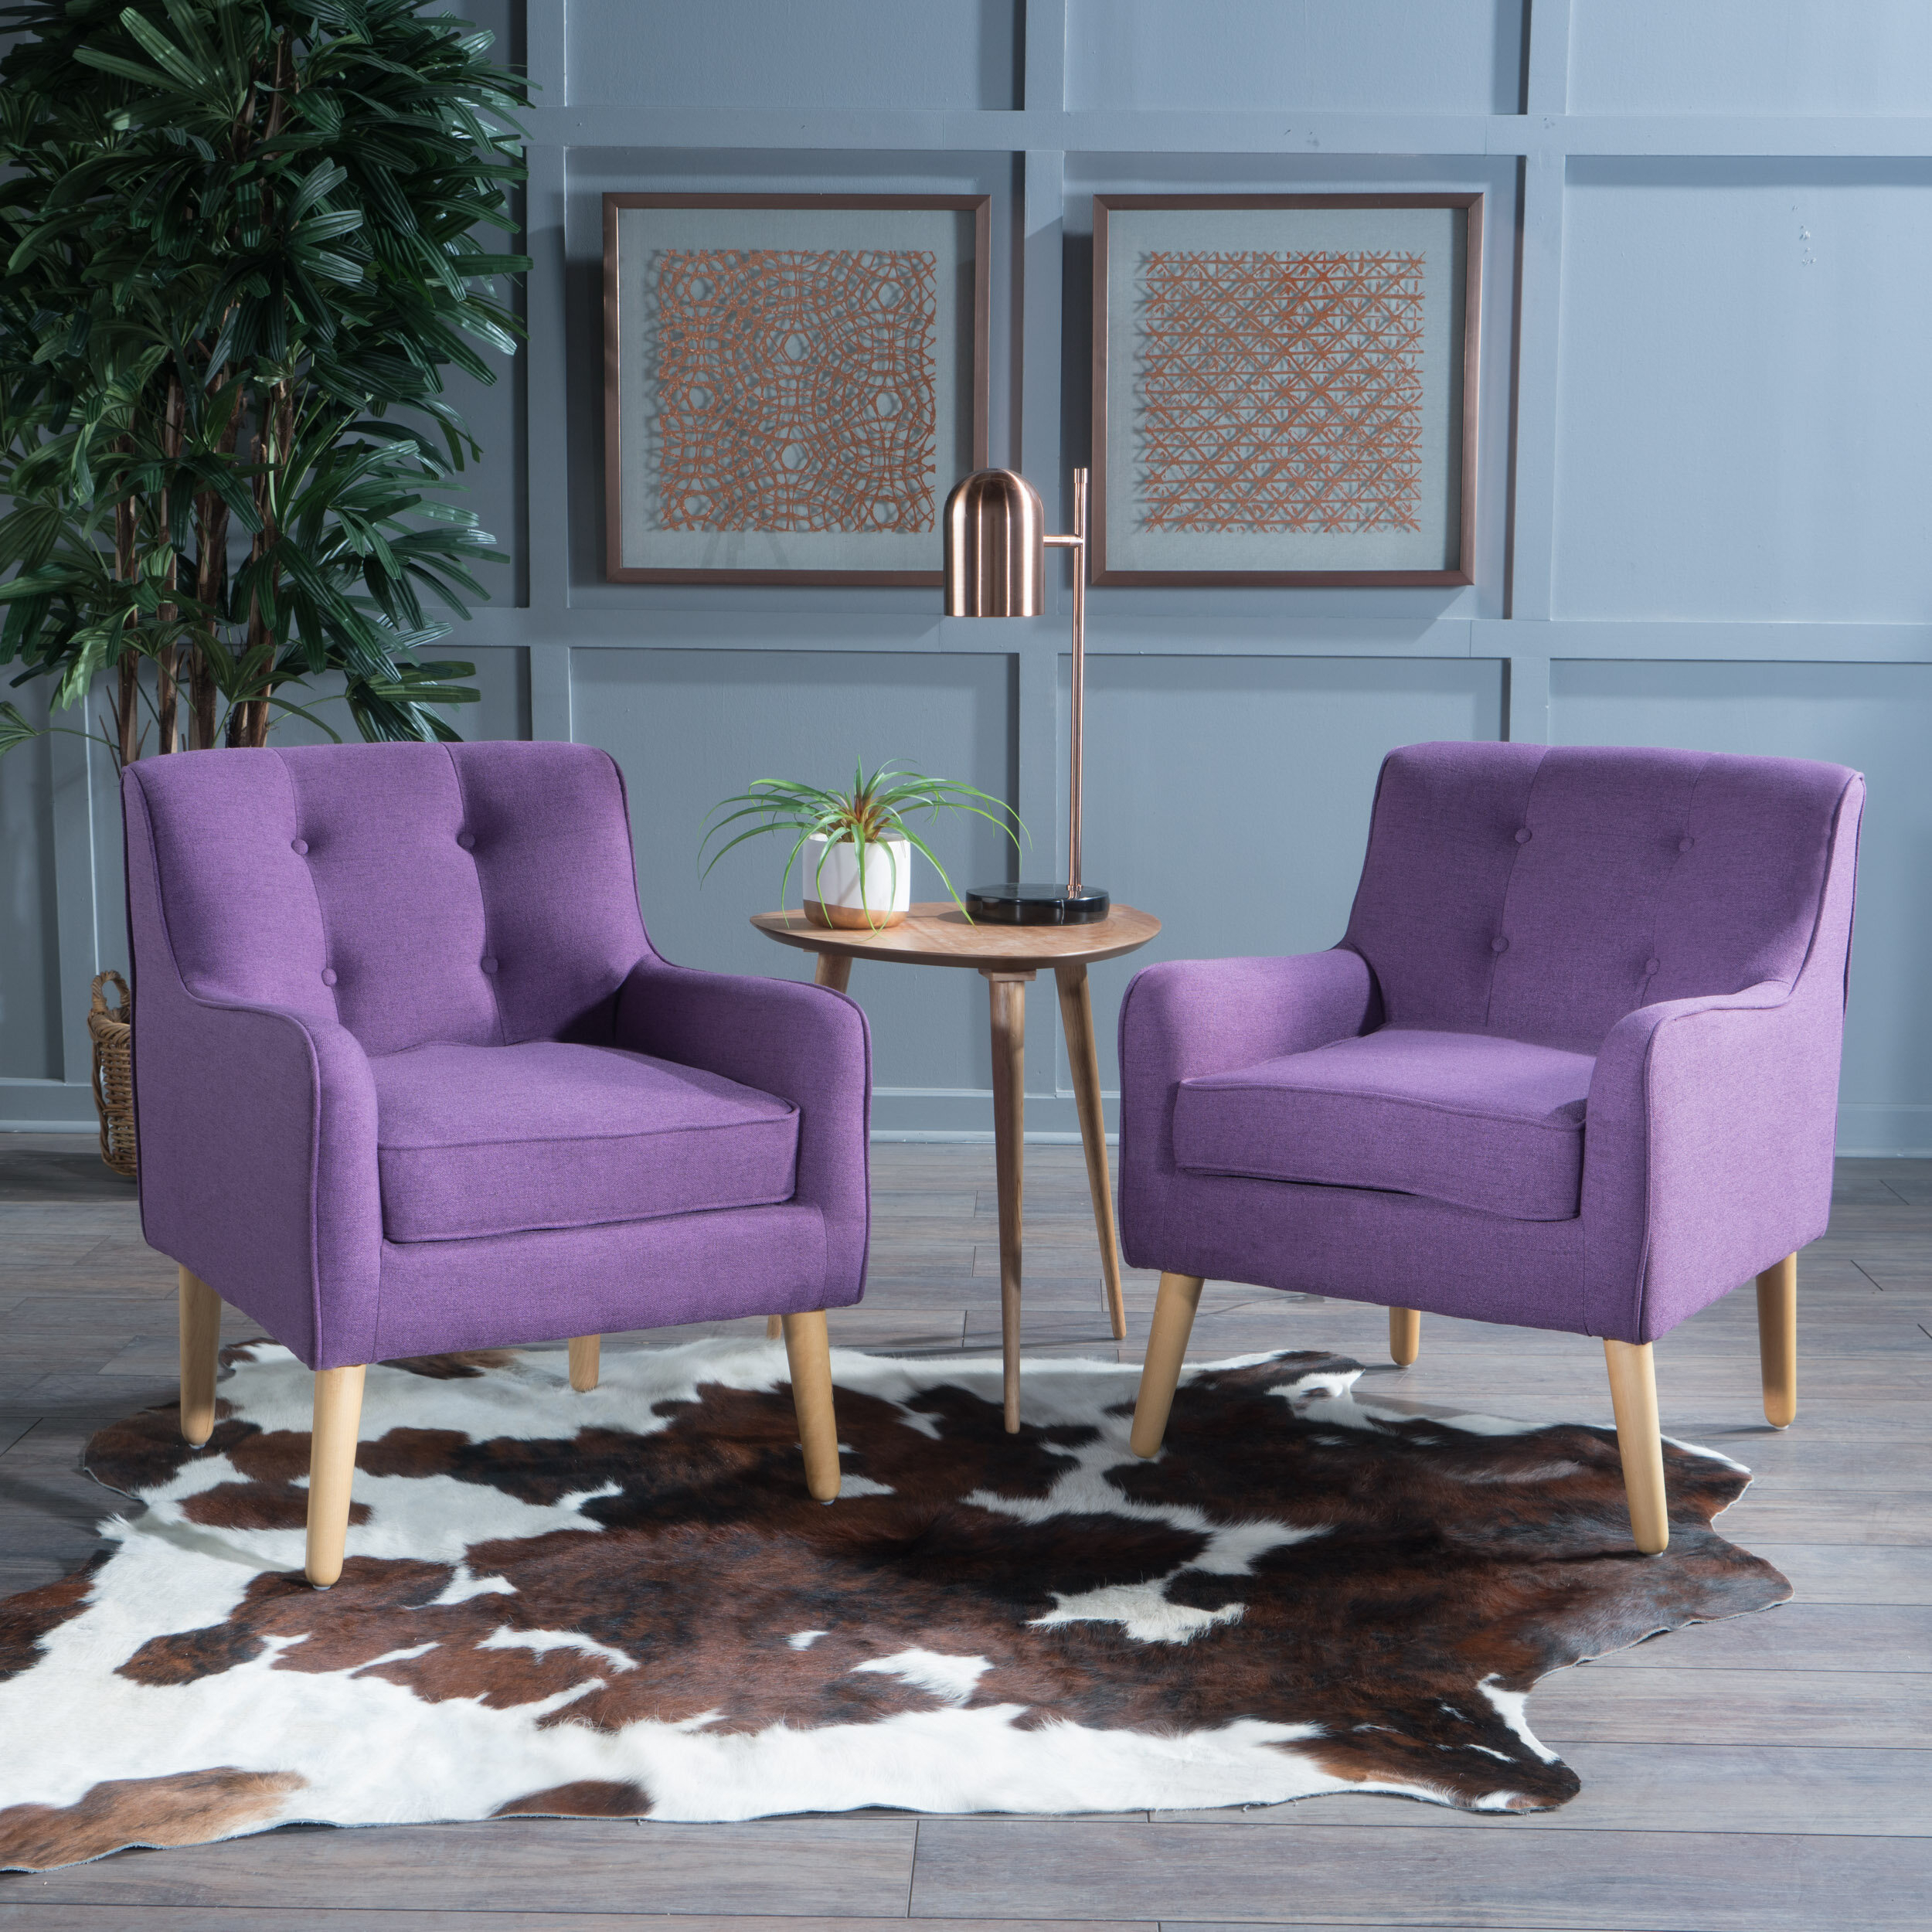 Purple Scandinavian Accent Chairs You'Ll Love In 2021 | Wayfair For Claudel Polyester Blend Barrel Chairs (View 14 of 15)